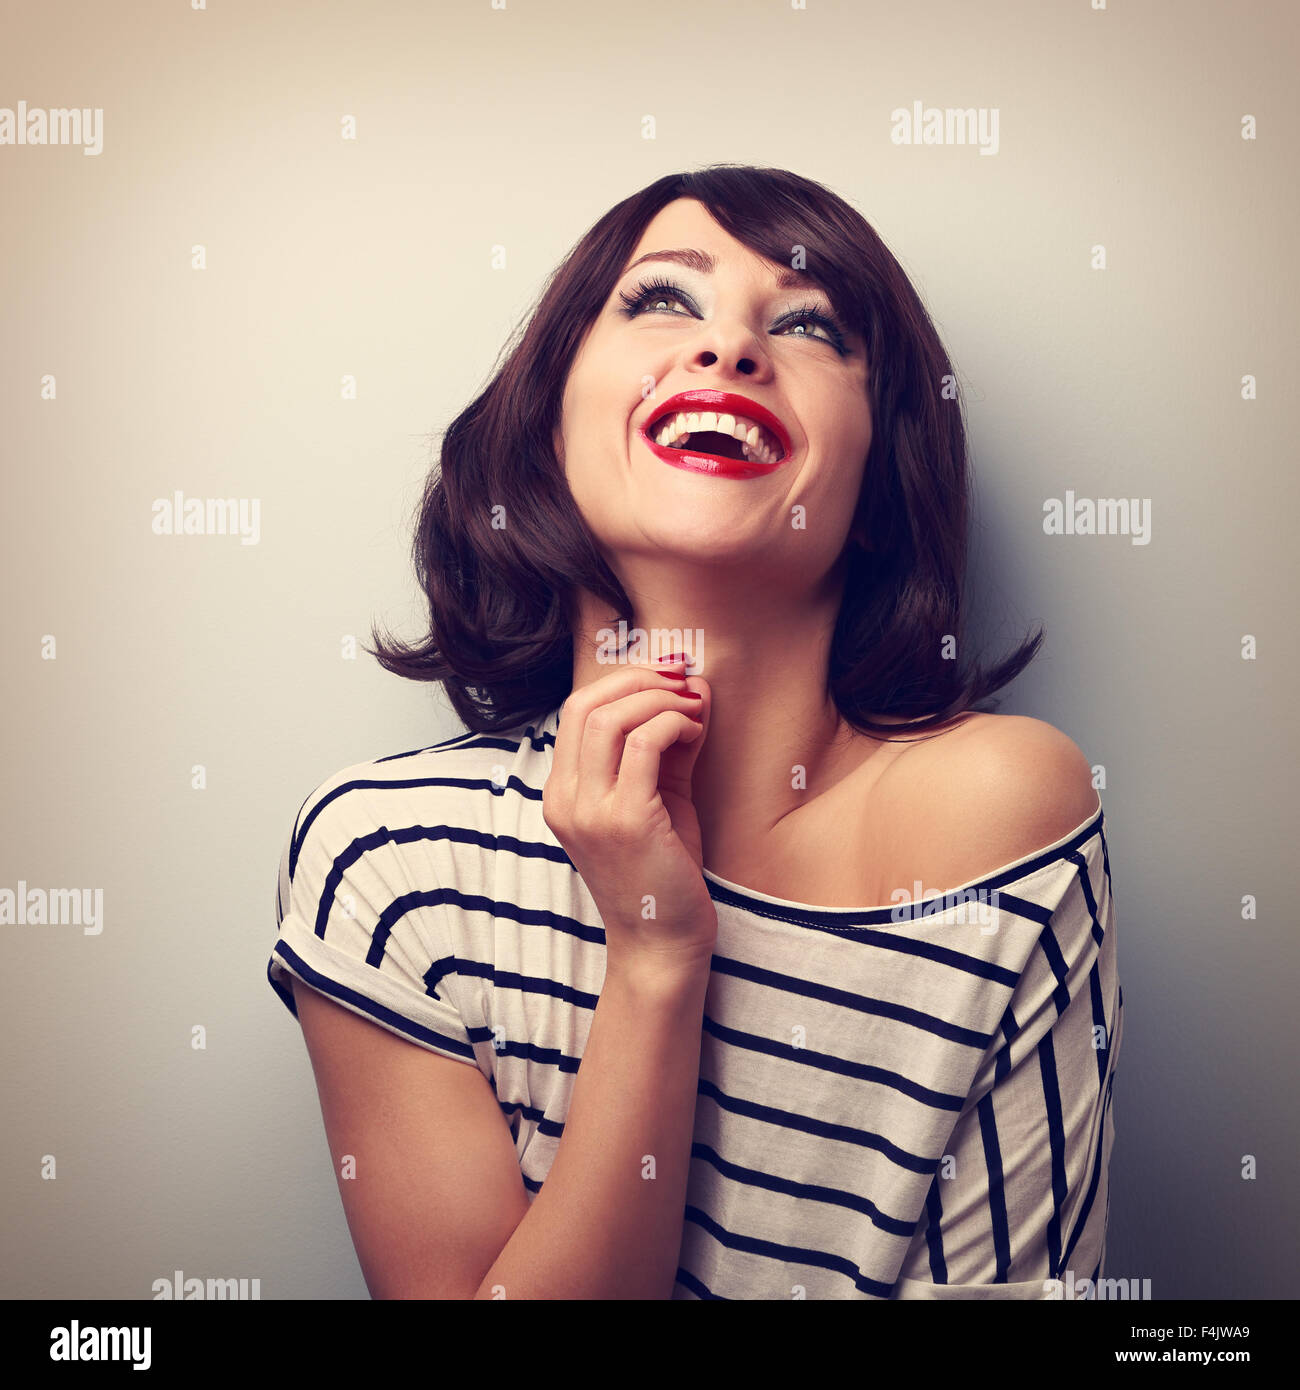 Happy loudly laughing young casual woman looking up. Vintage closeup portrait - Stock Image